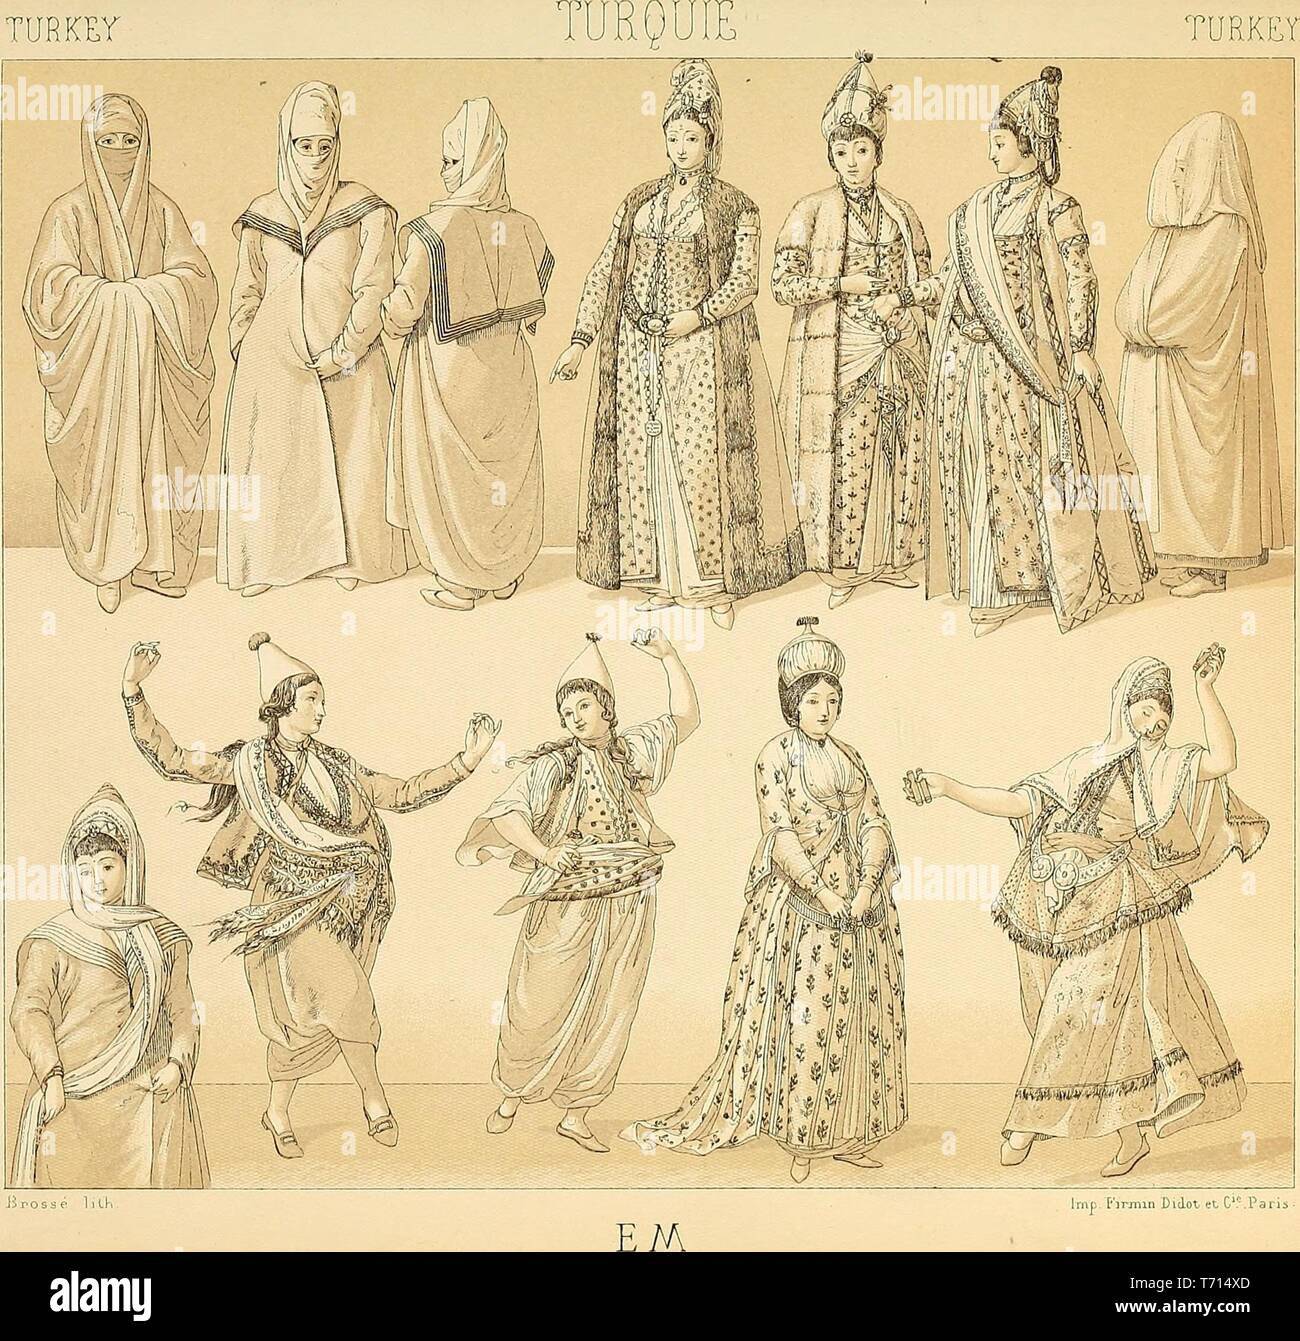 Illustrated drawing of Turkish feminine folk costumes, from the book 'Le costume historique' by Auguste Racinet, 1888. Courtesy Internet Archive. () - Stock Image